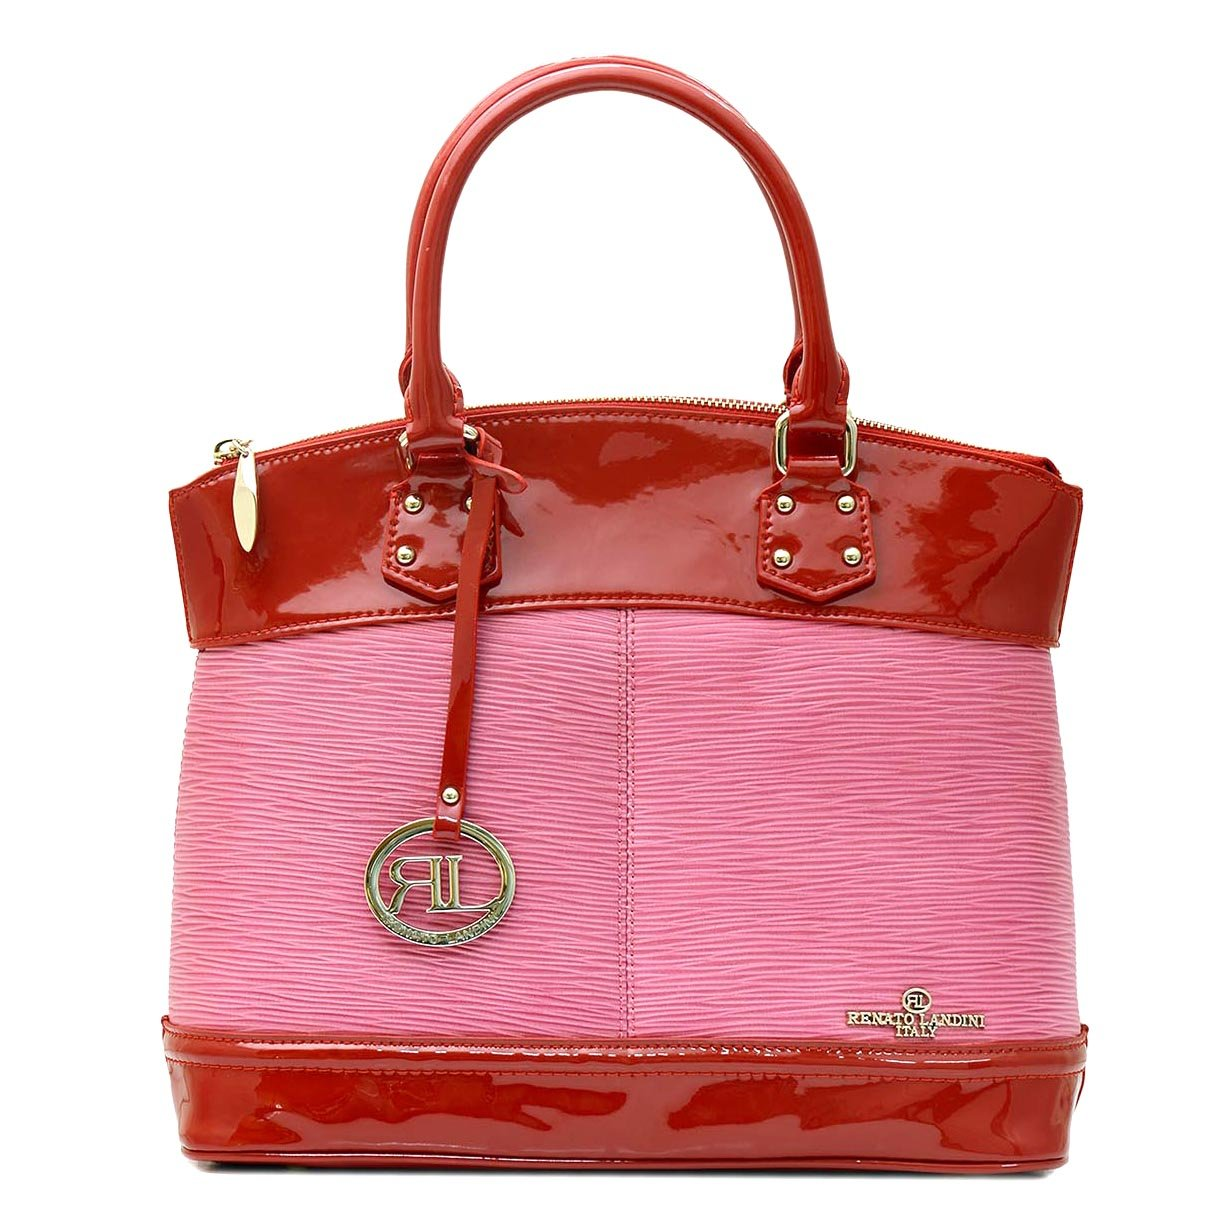 RENATO LANDINI Lady's Bag Red/ Moda